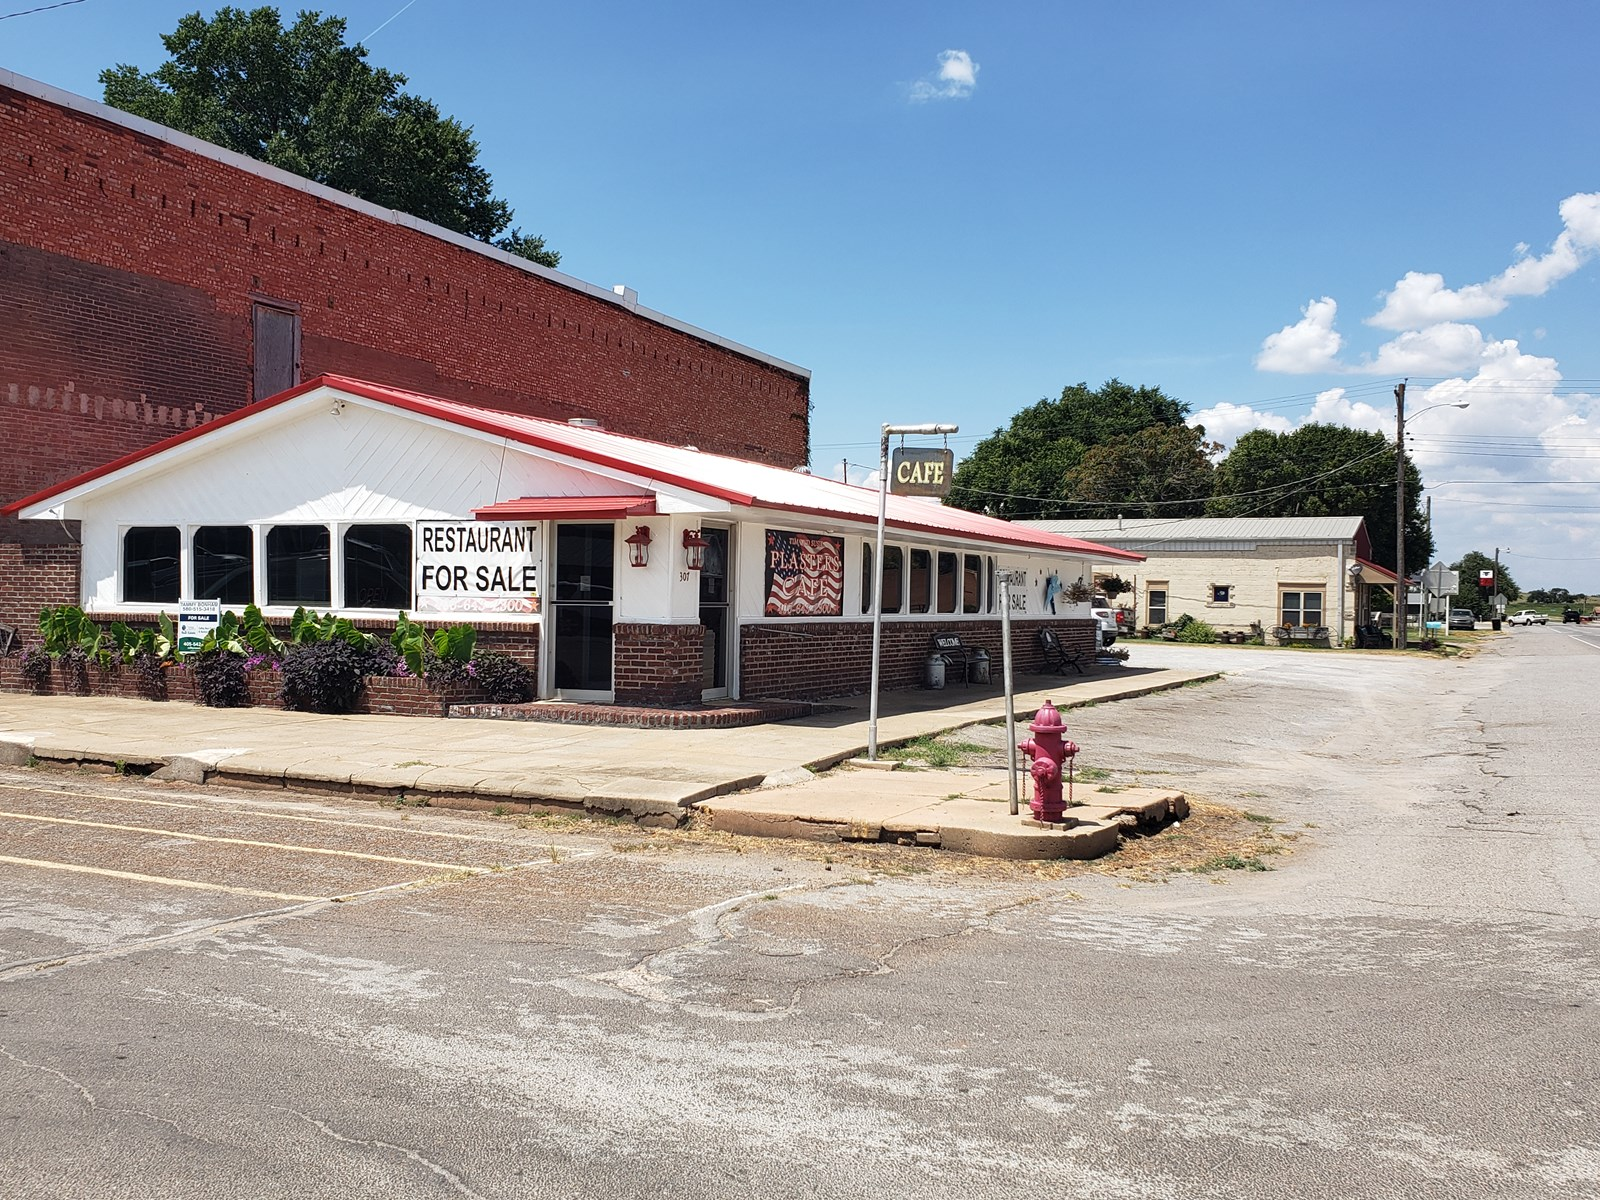 Established Turnkey Restaurant For Sale in Fort Cobb, OK